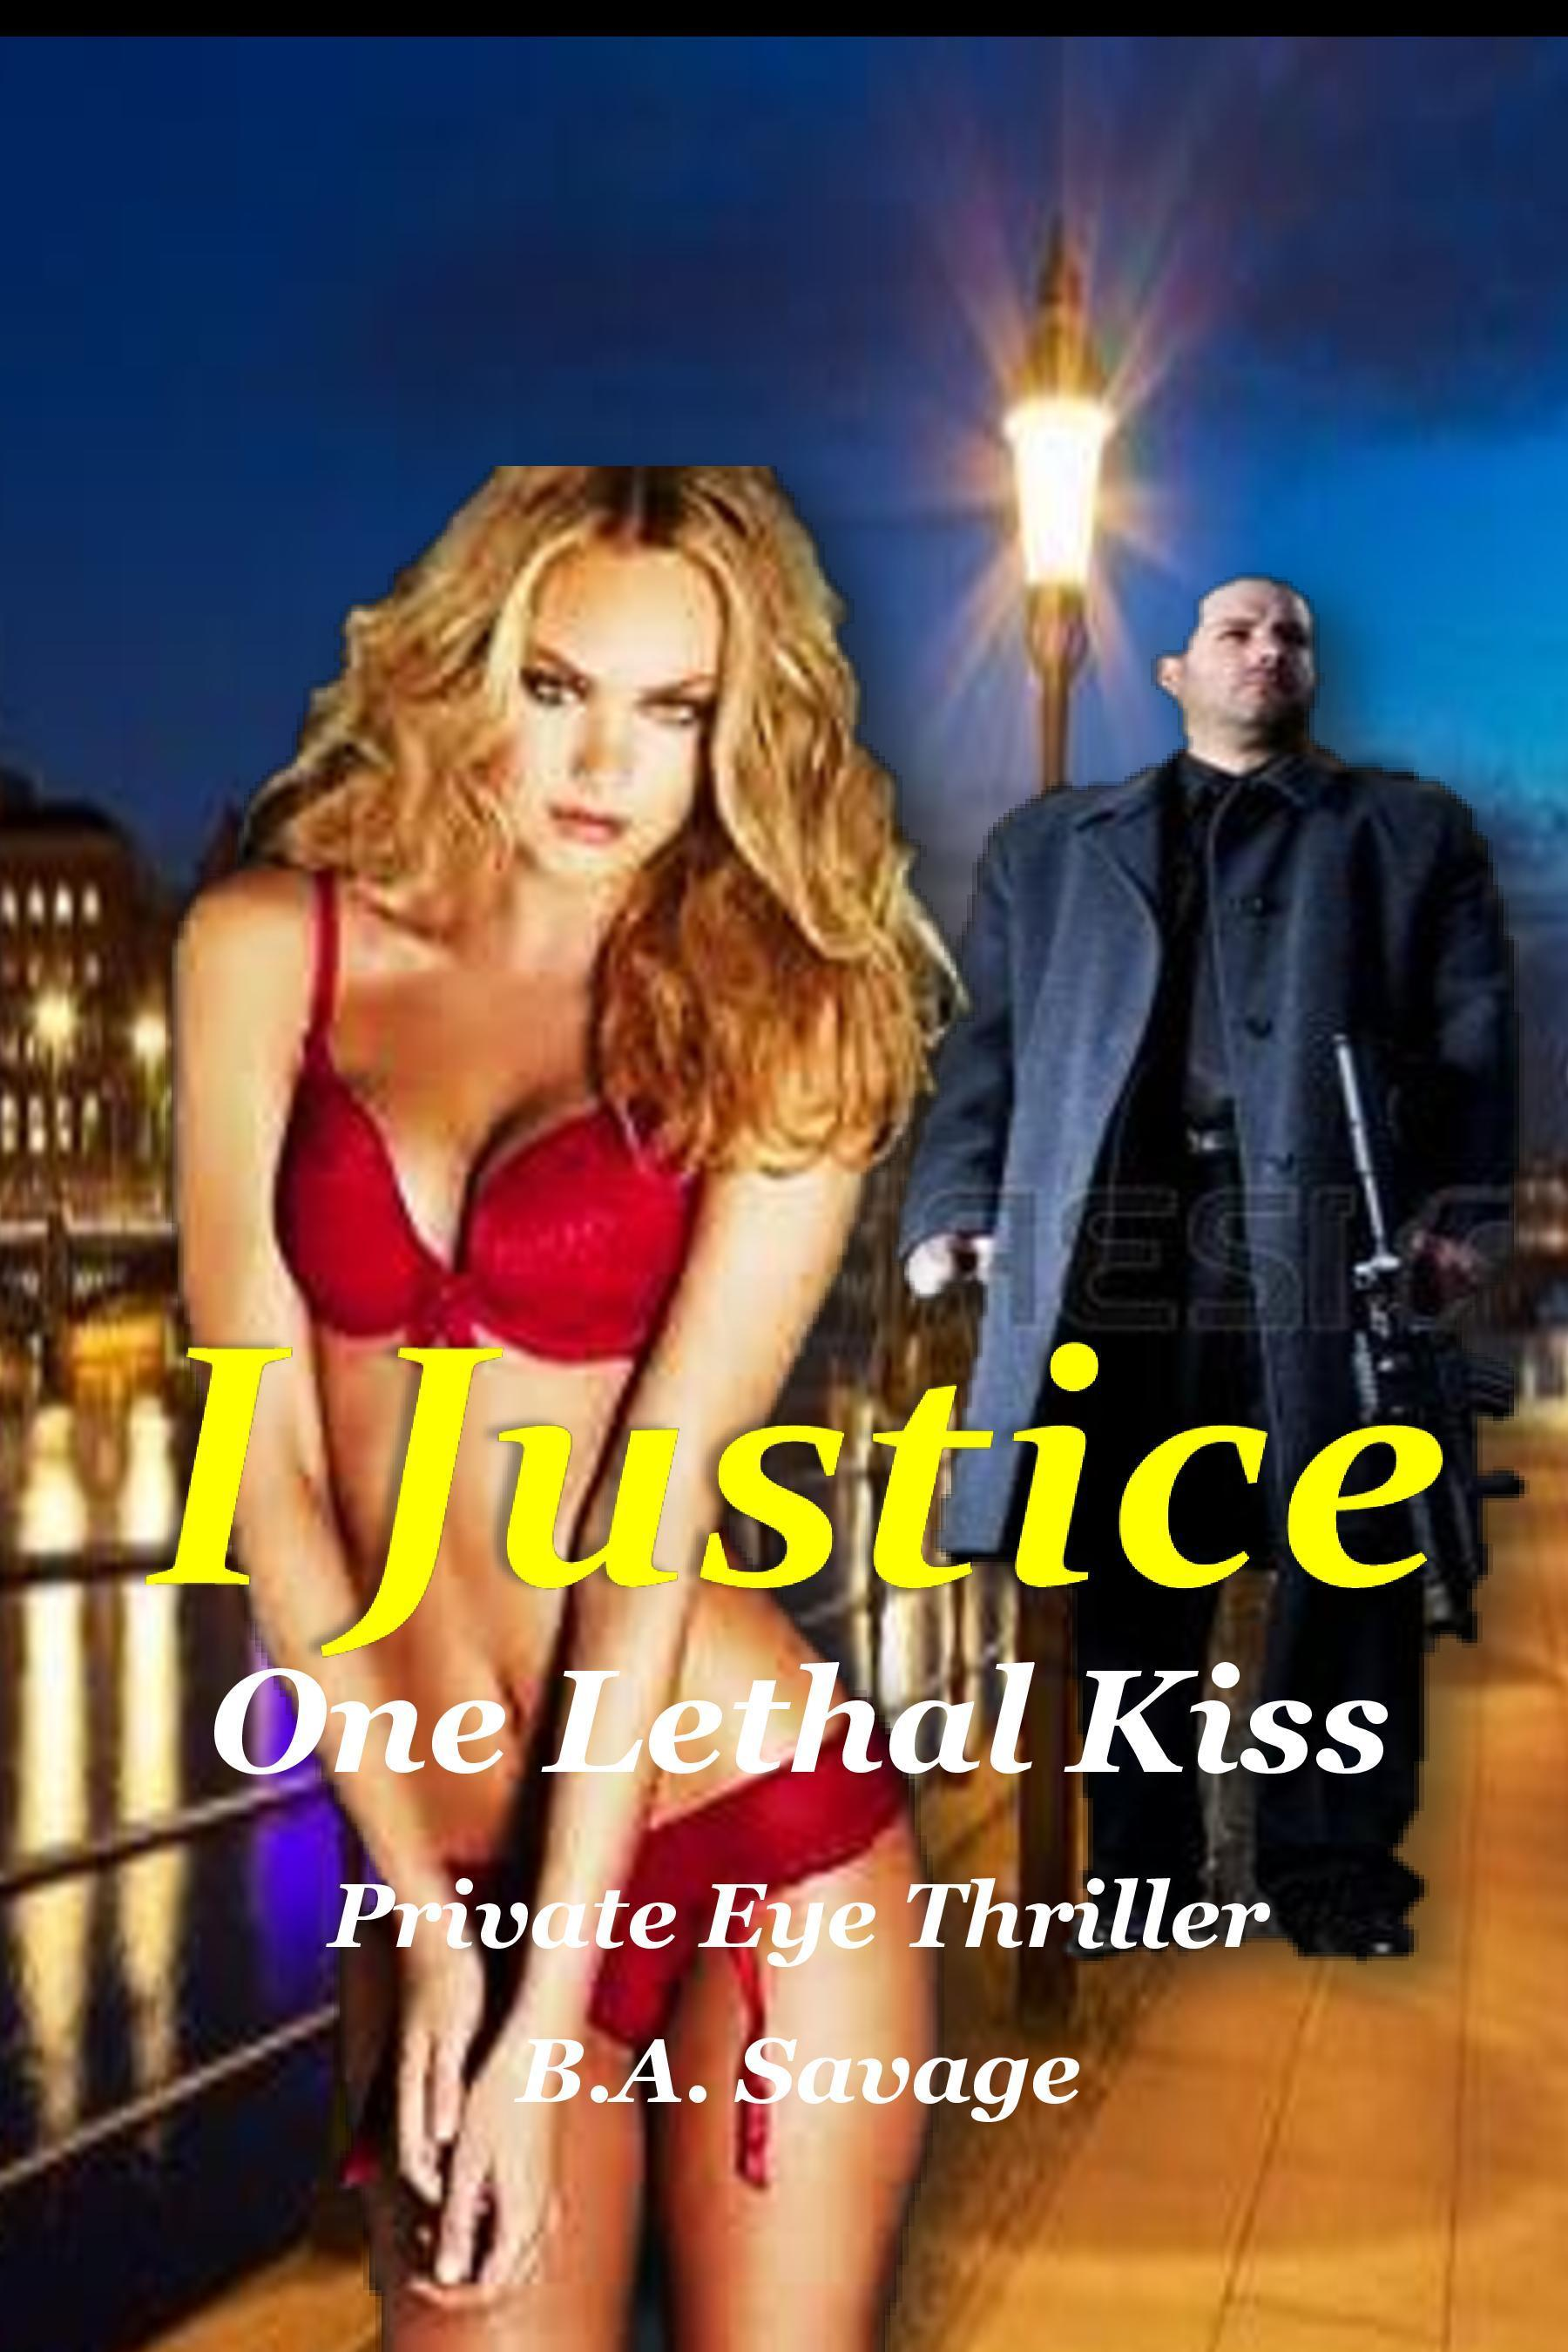 I Justice: One Lethal Kiss Private Eye Thriller  by  B.A. Savage